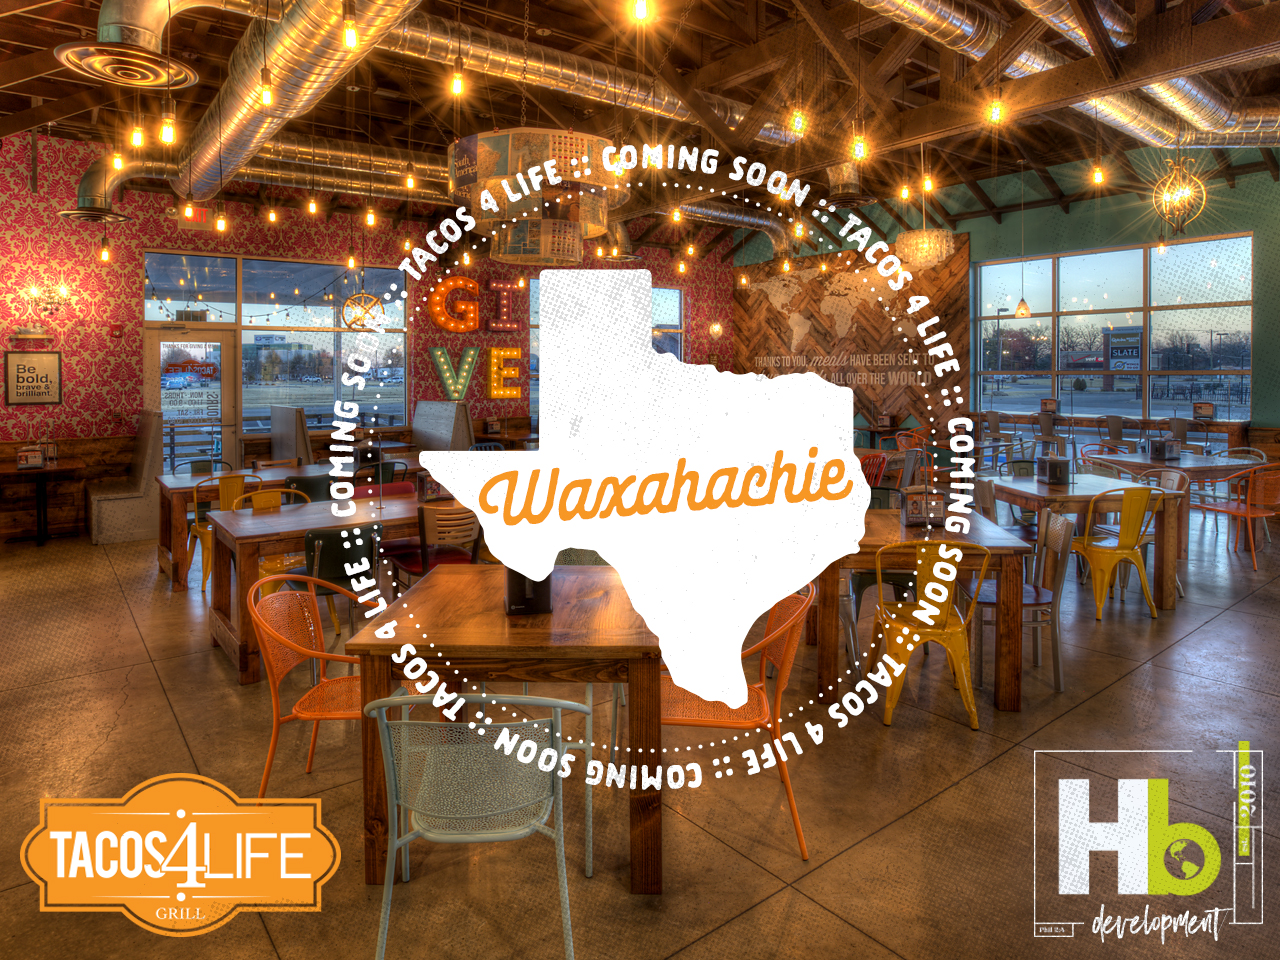 Tacos 4 Life Expands Texas Reach With Waxahachie Location